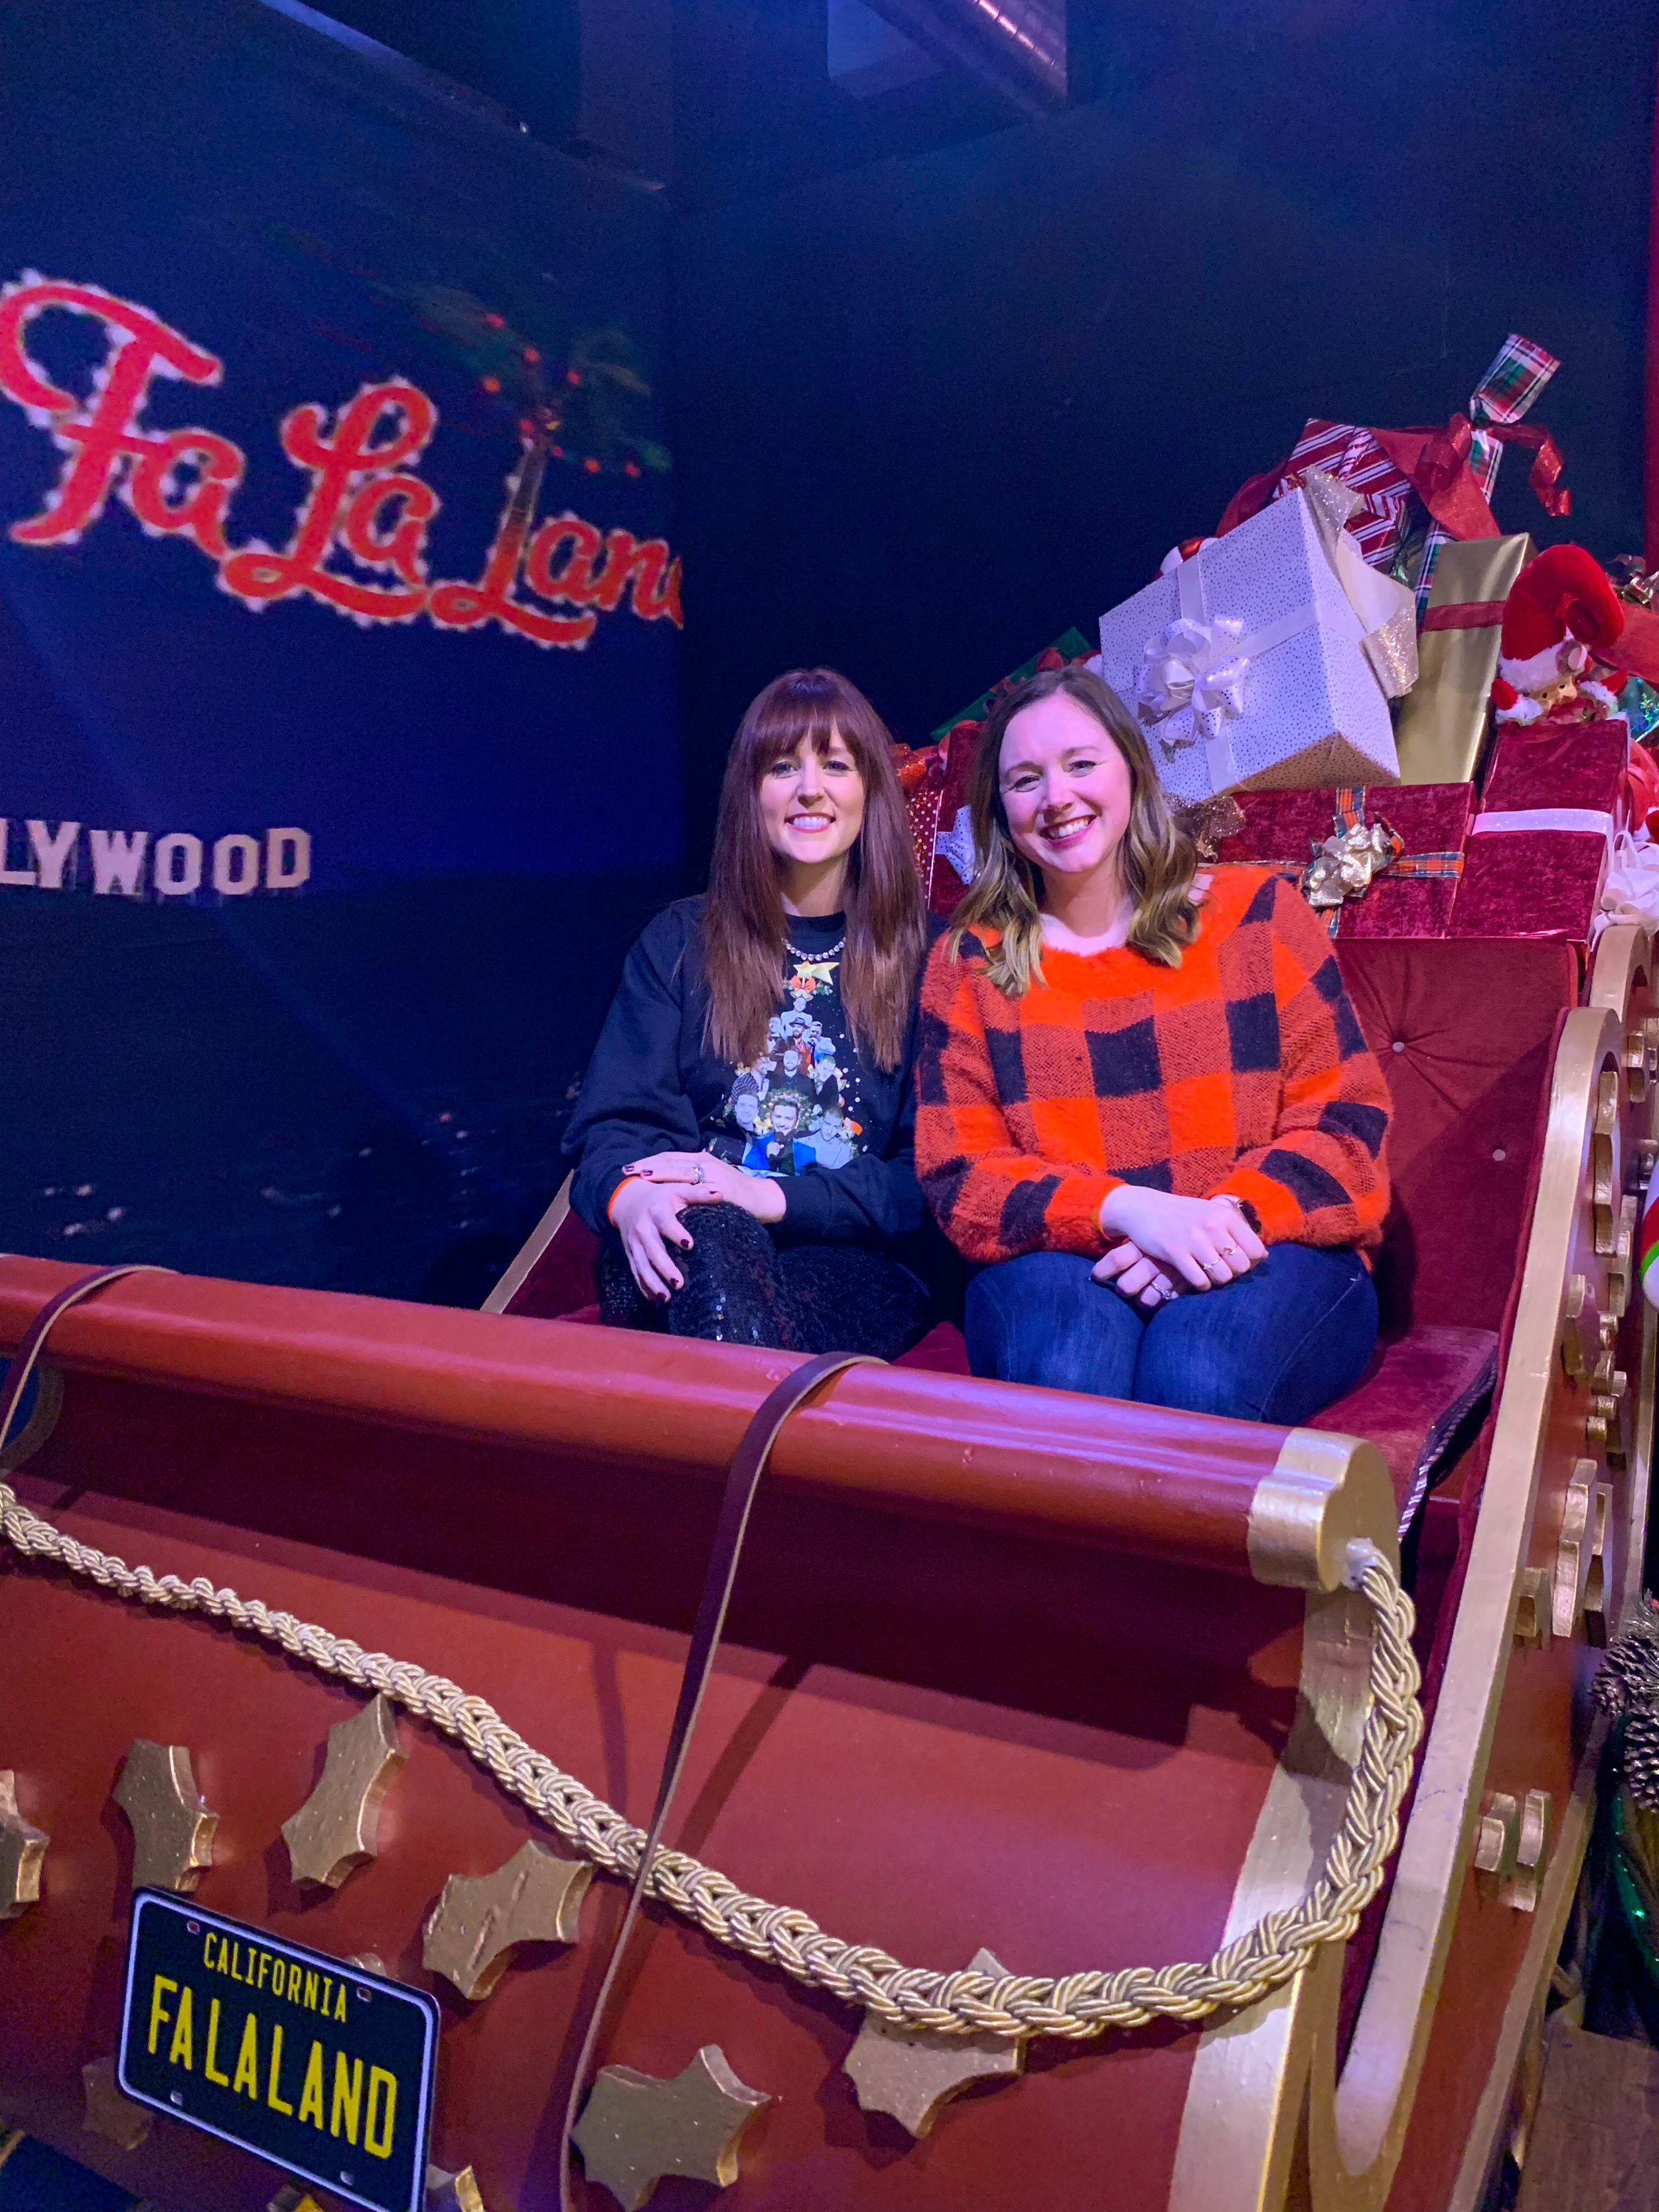 Fa La Land Downtown Los Angeles - Sleigh Ride